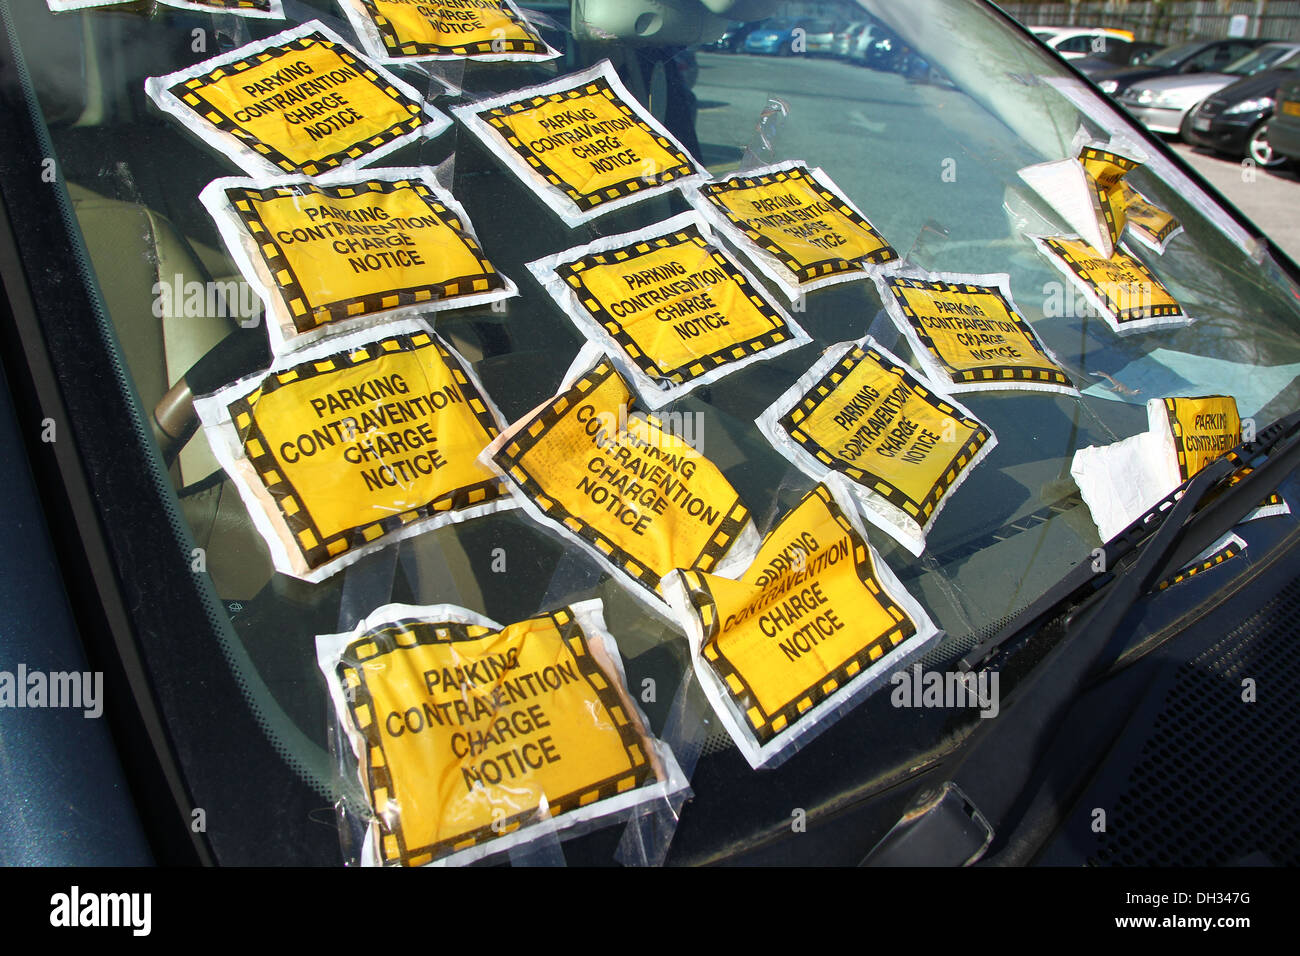 An illegally parked car with multiple parking tickets - Stock Image